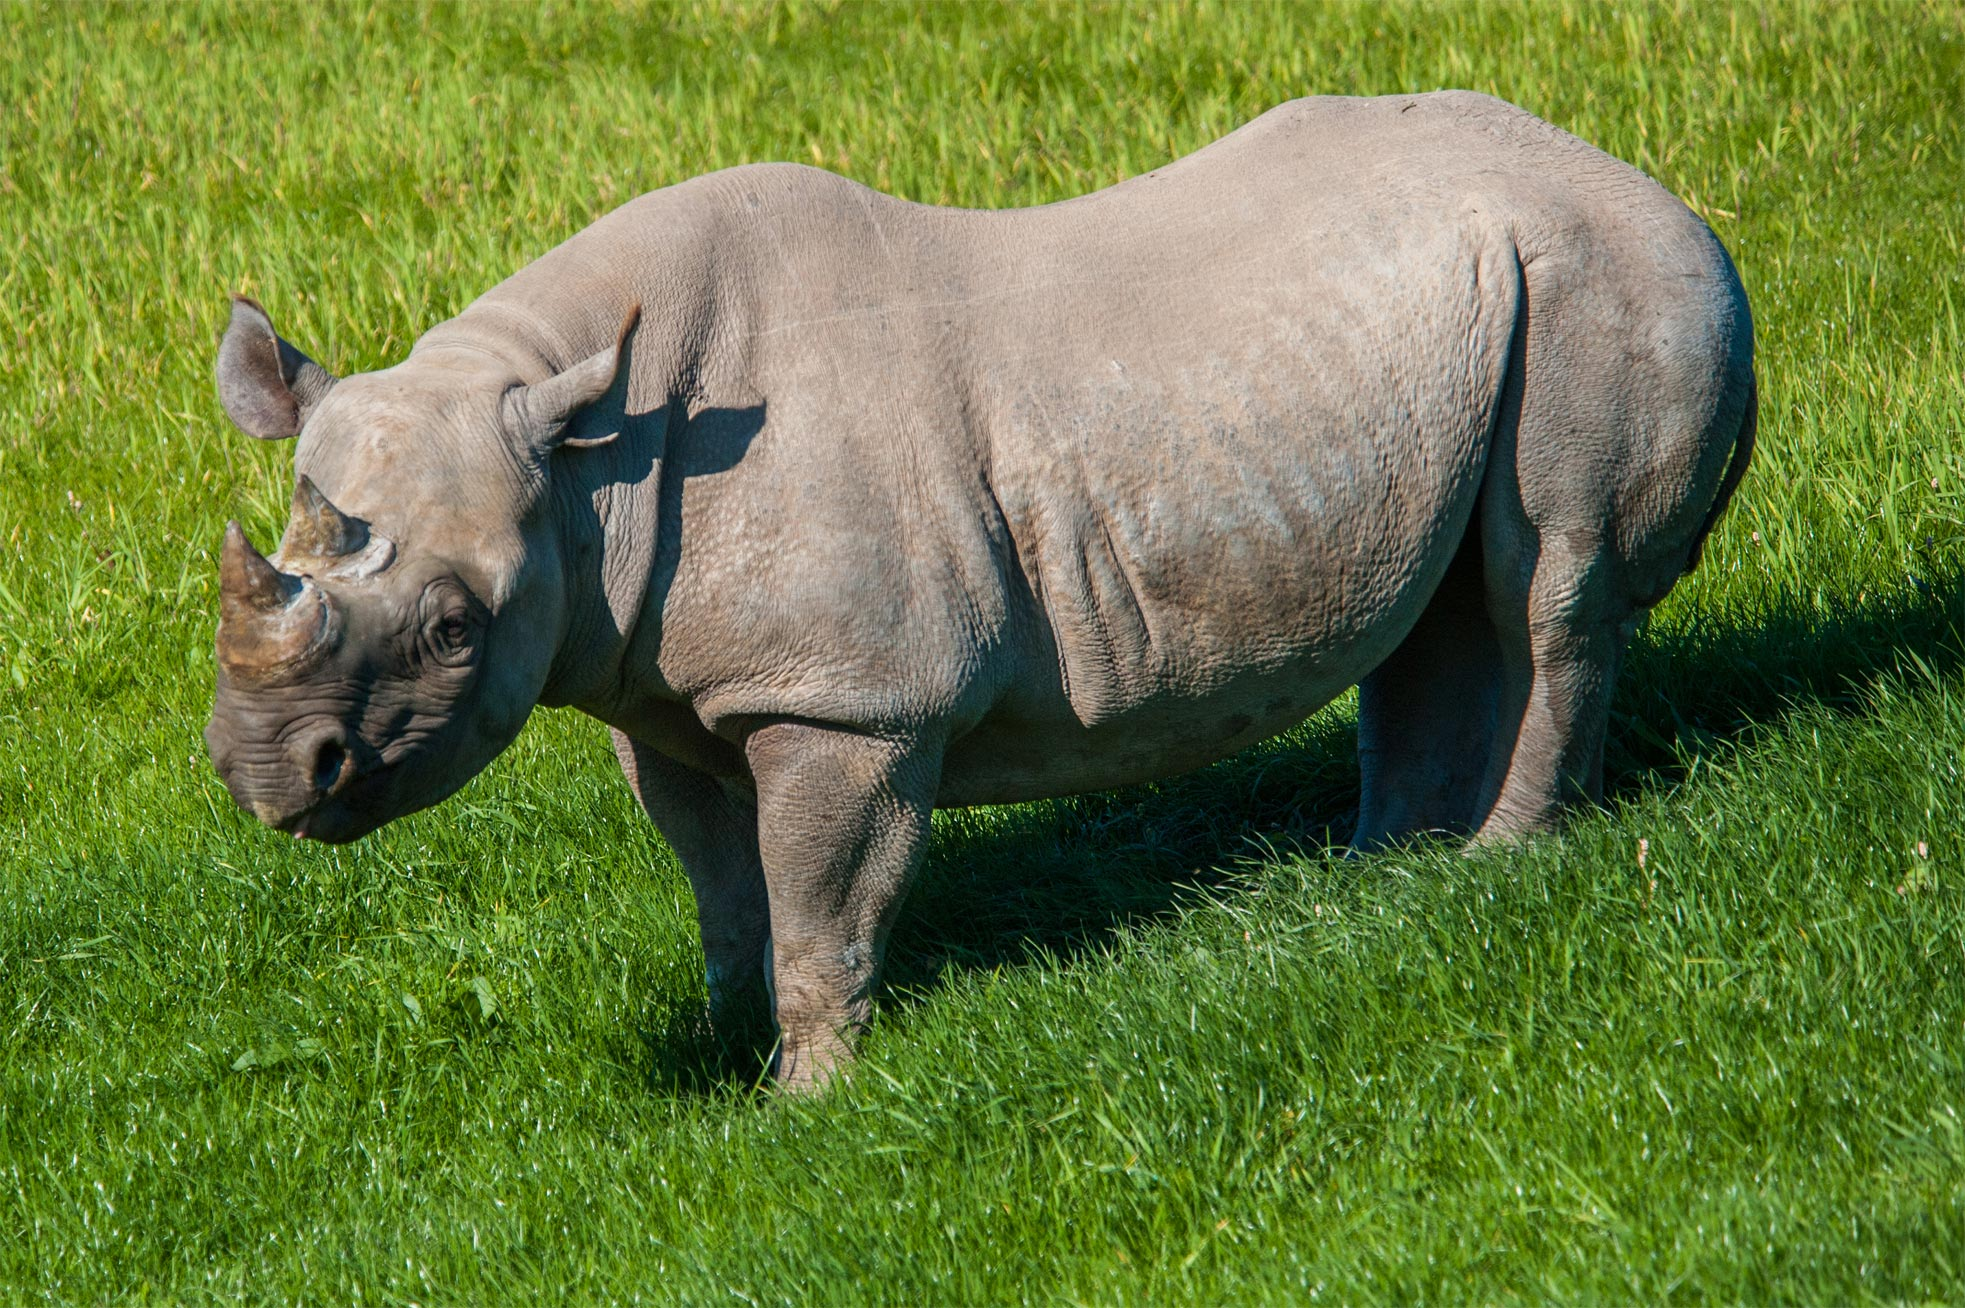 Rhino outside